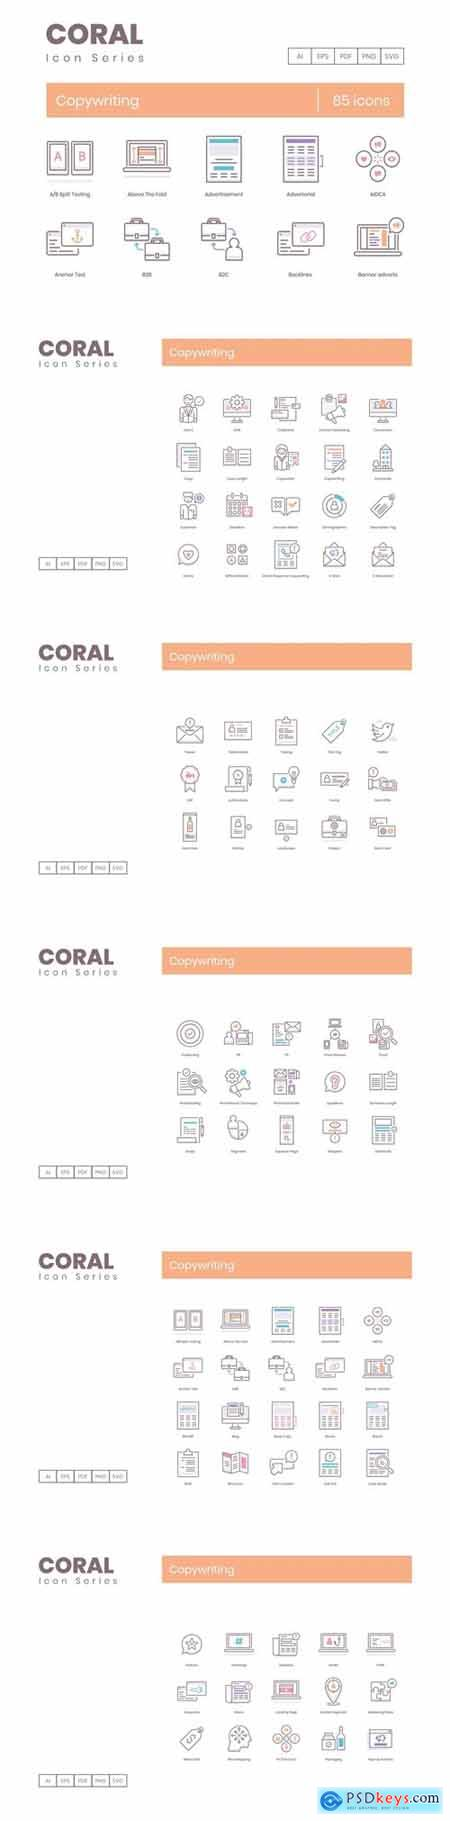 85 Copywriting Icons Coral Series (smooth)